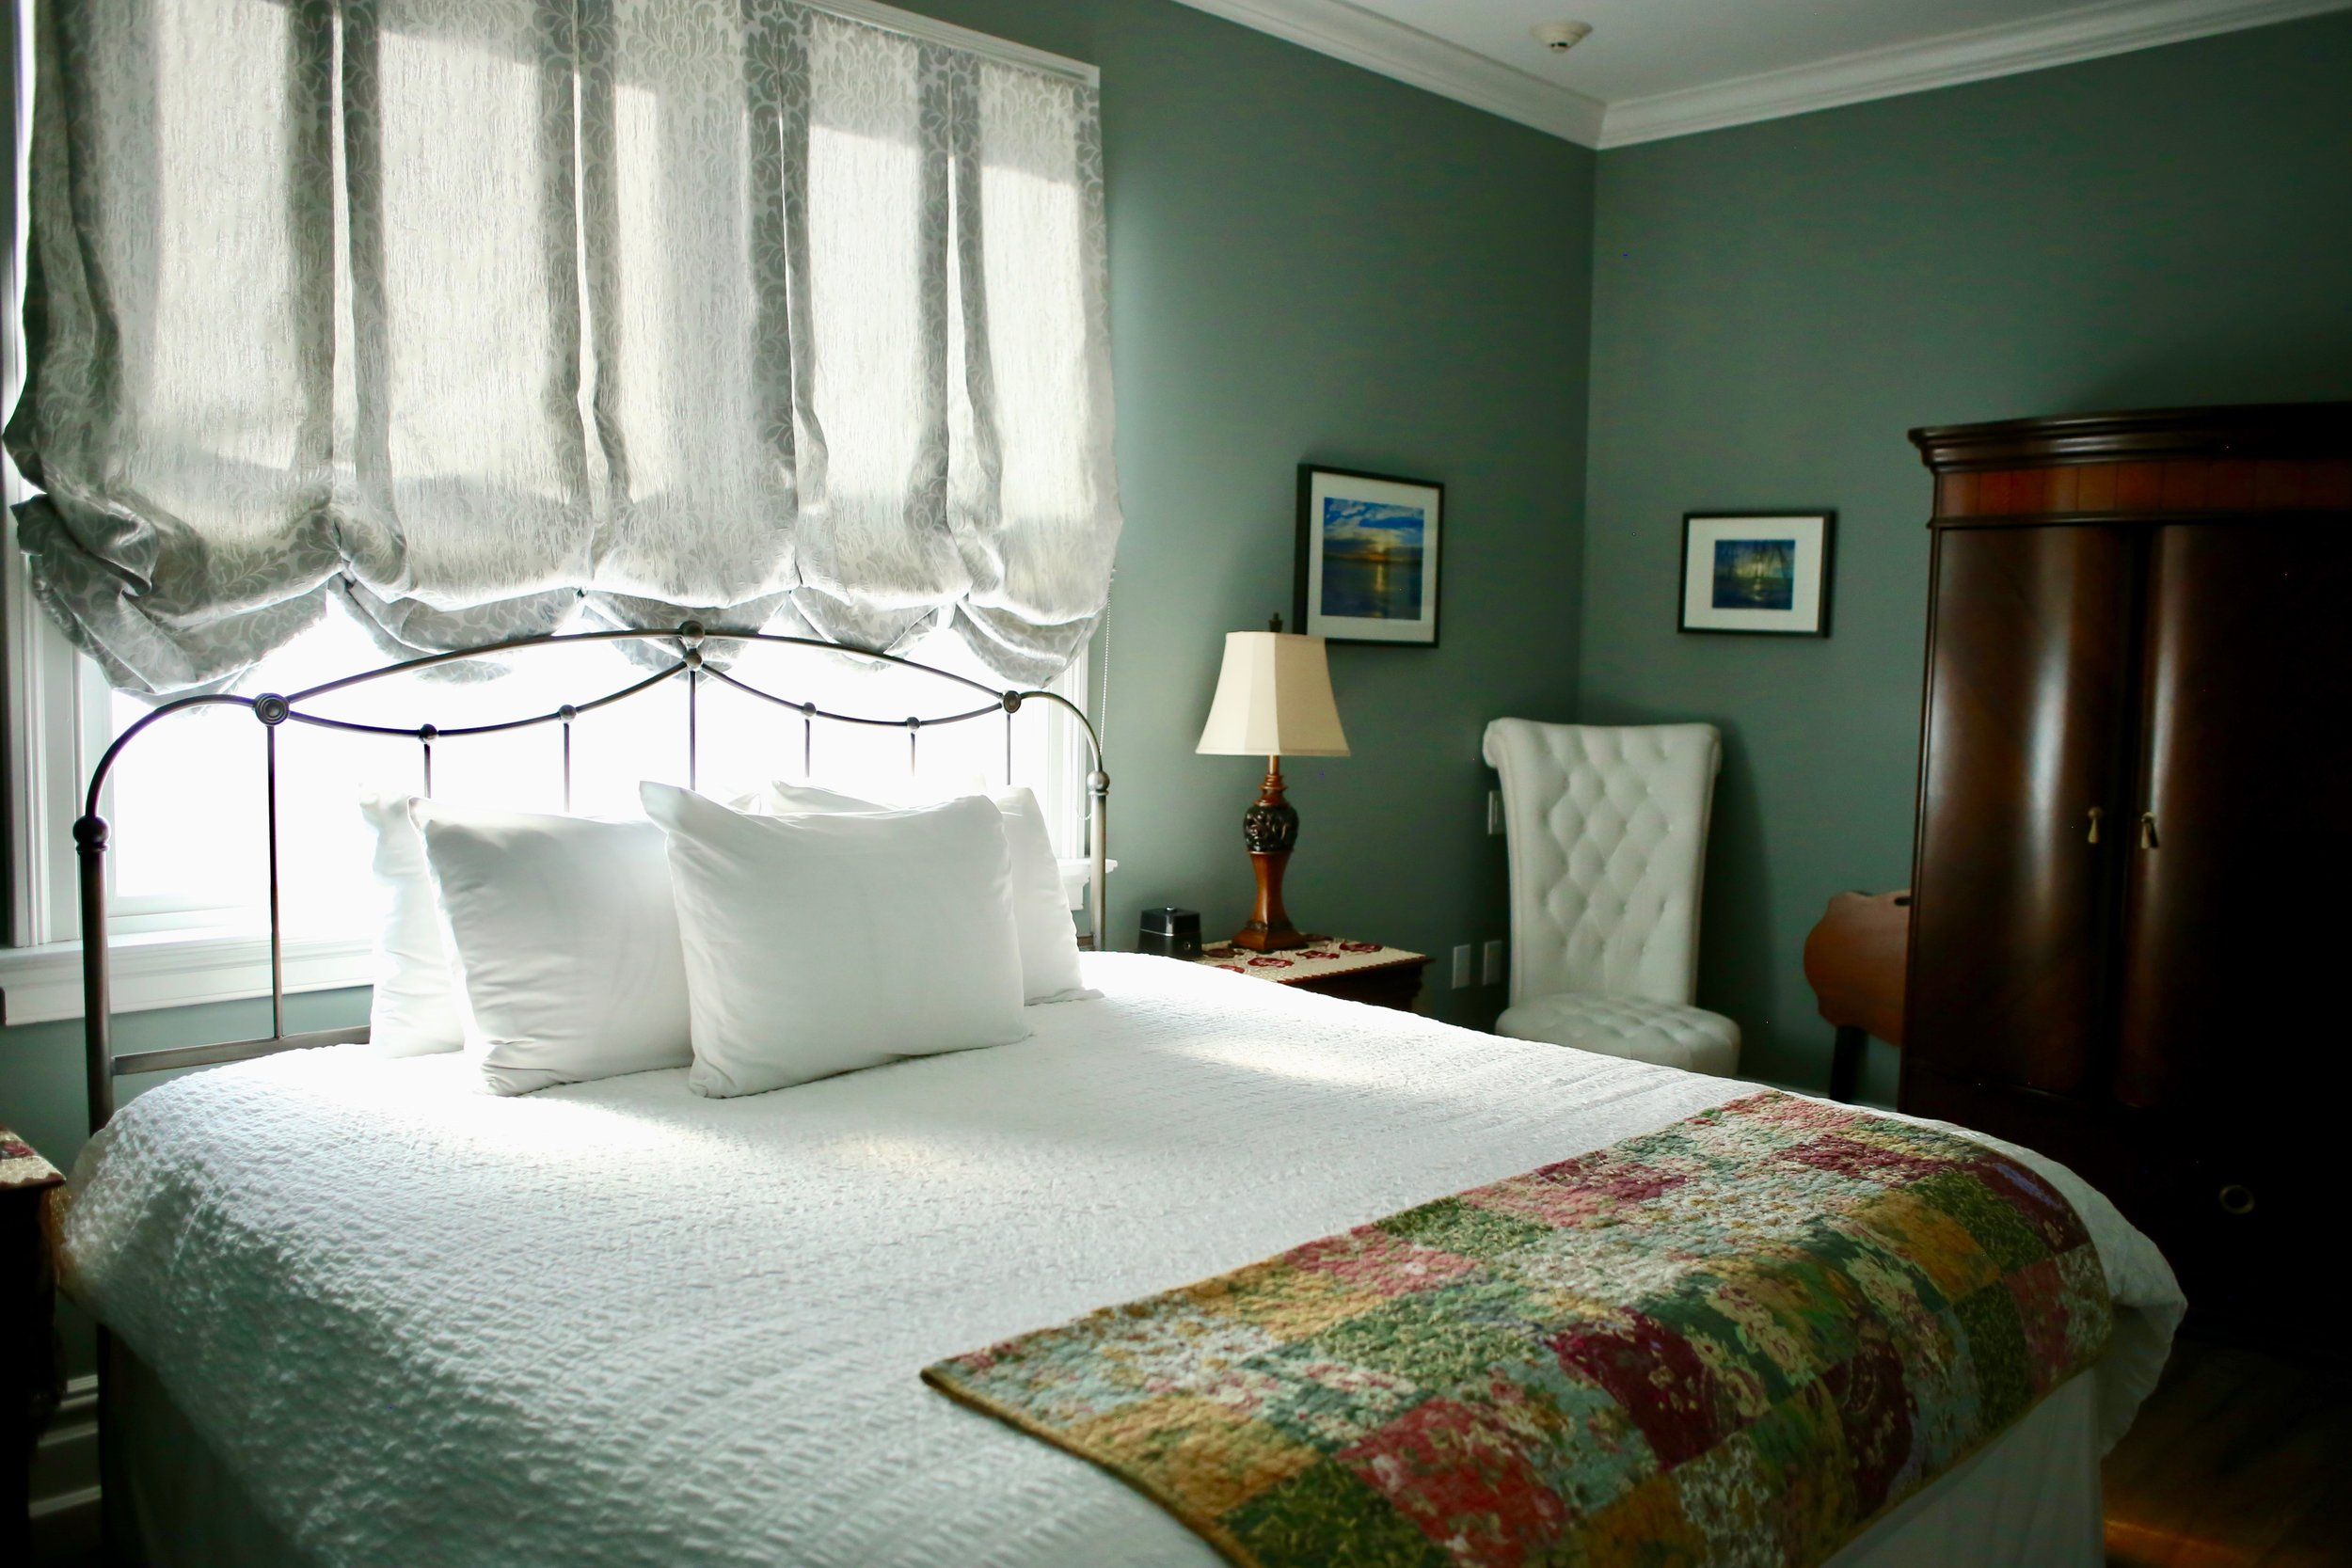 The Best Botique Hotel in the Hudson River Valley. Perfect for Micro-Weddings.